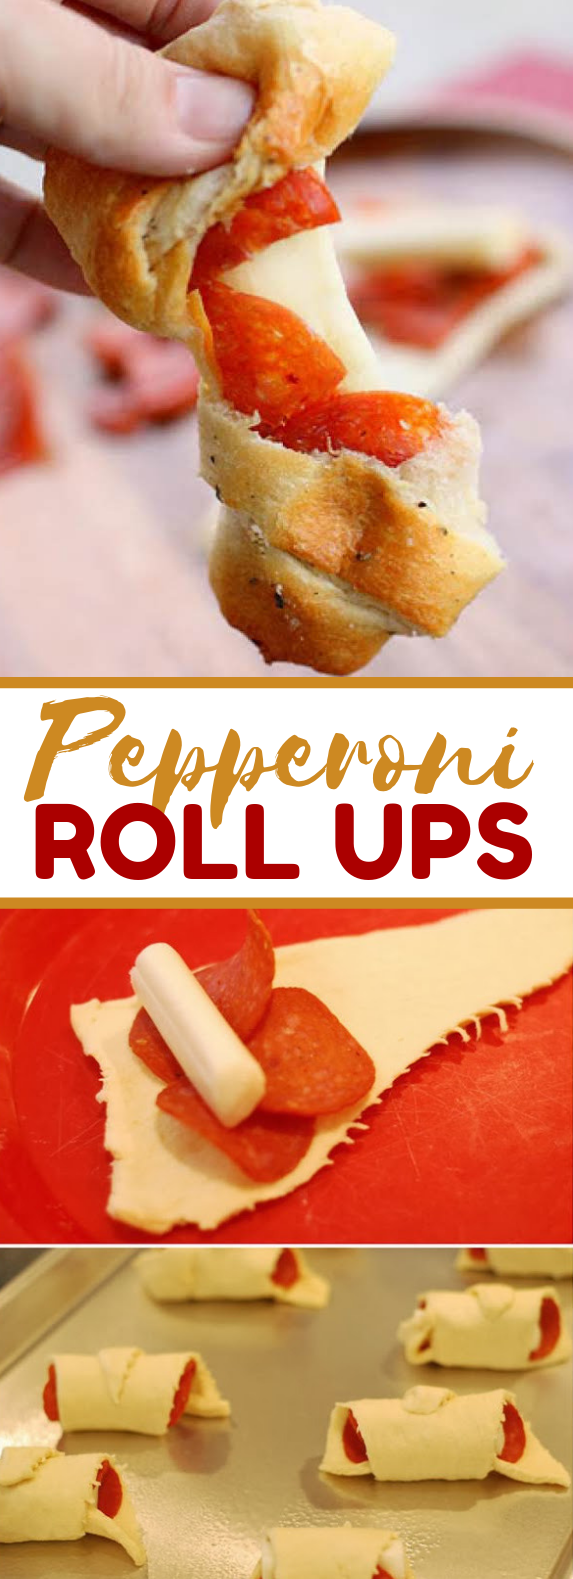 Pepperoni Roll Ups #appetizers #dinner